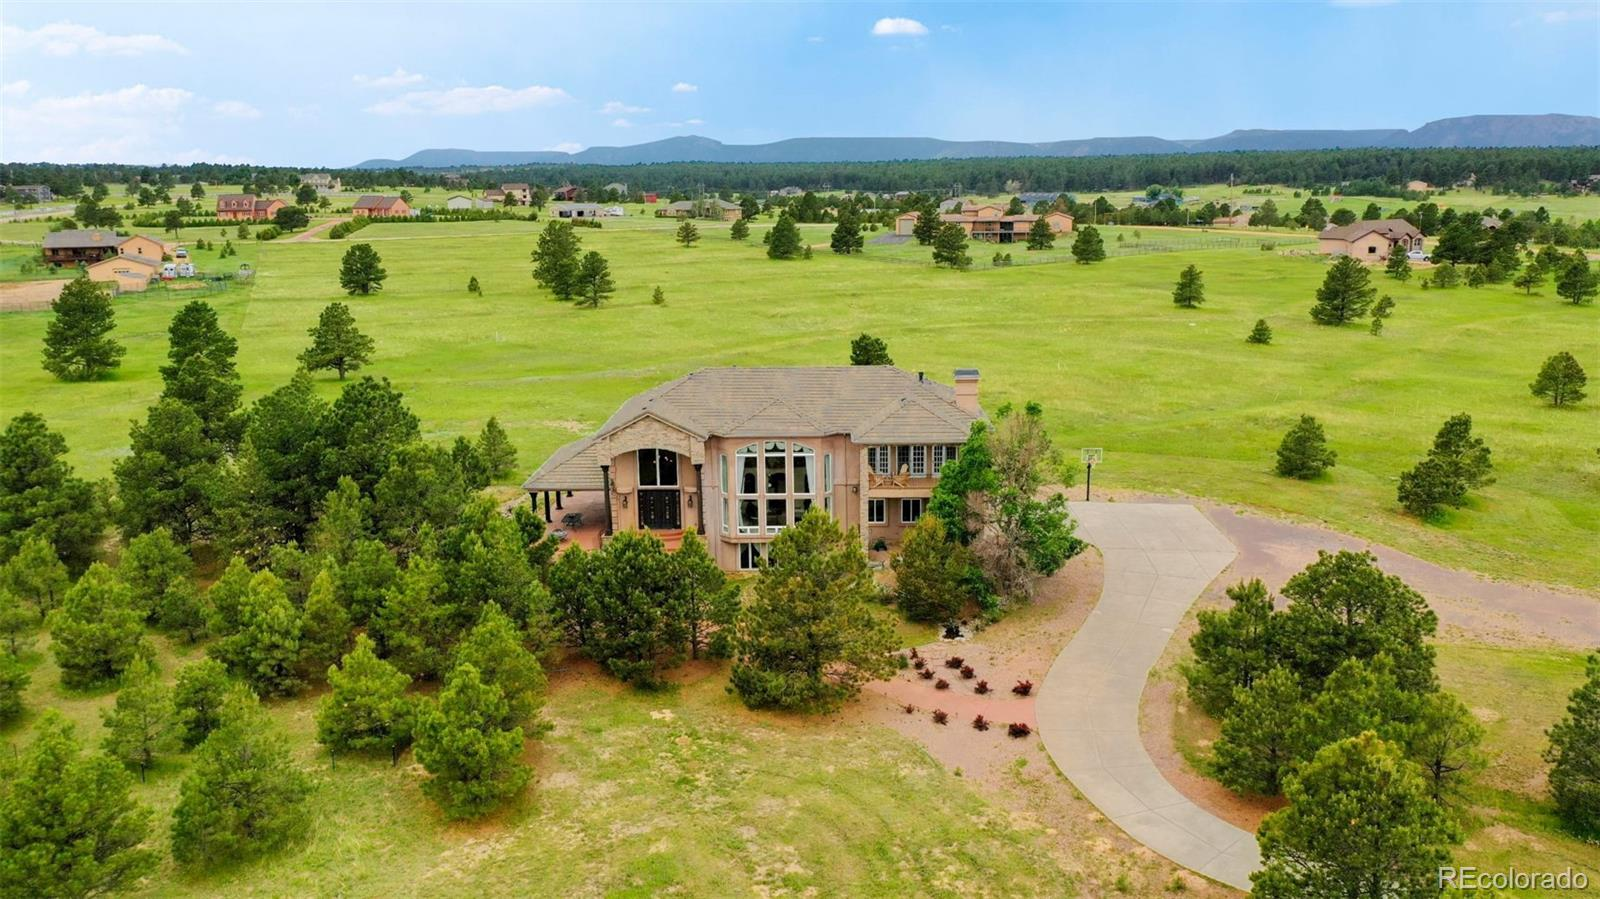 Gorgeous custom estate on 5.22 acres with spectacular views of Pikes Peak from almost every window! Unobstructed views due to large acreage properties to the east and North. Zoned for horses with approximately 6,458 finished square feet with 4 bedrooms and 5 baths. Stunning 2 Story Great Room with magnificent floor to ceiling windows, custom drapes, fireplace and art niches. Amazing attention to detail throughout in the hand-troweled walls/ceilings, Italian marble & hickory hardwood flooring. Luxurious Master Suite with fireplace, en suite spa 5 piece bath with fireplace, heated marble floors, large walk-in closet, 2nd laundry and private 20'x 11' covered deck with outdoor fire pit.  Gourmet kitchen features granite counters, beautiful cabinets, breakfast bar, walk-in pantry and center island. Laundry on main and upper levels. Finished lower level with wet bar, media center, family room/rec room, bath and possible 4th bedroom. 3 decks/patios including a 34'x 16' covered Veranda.